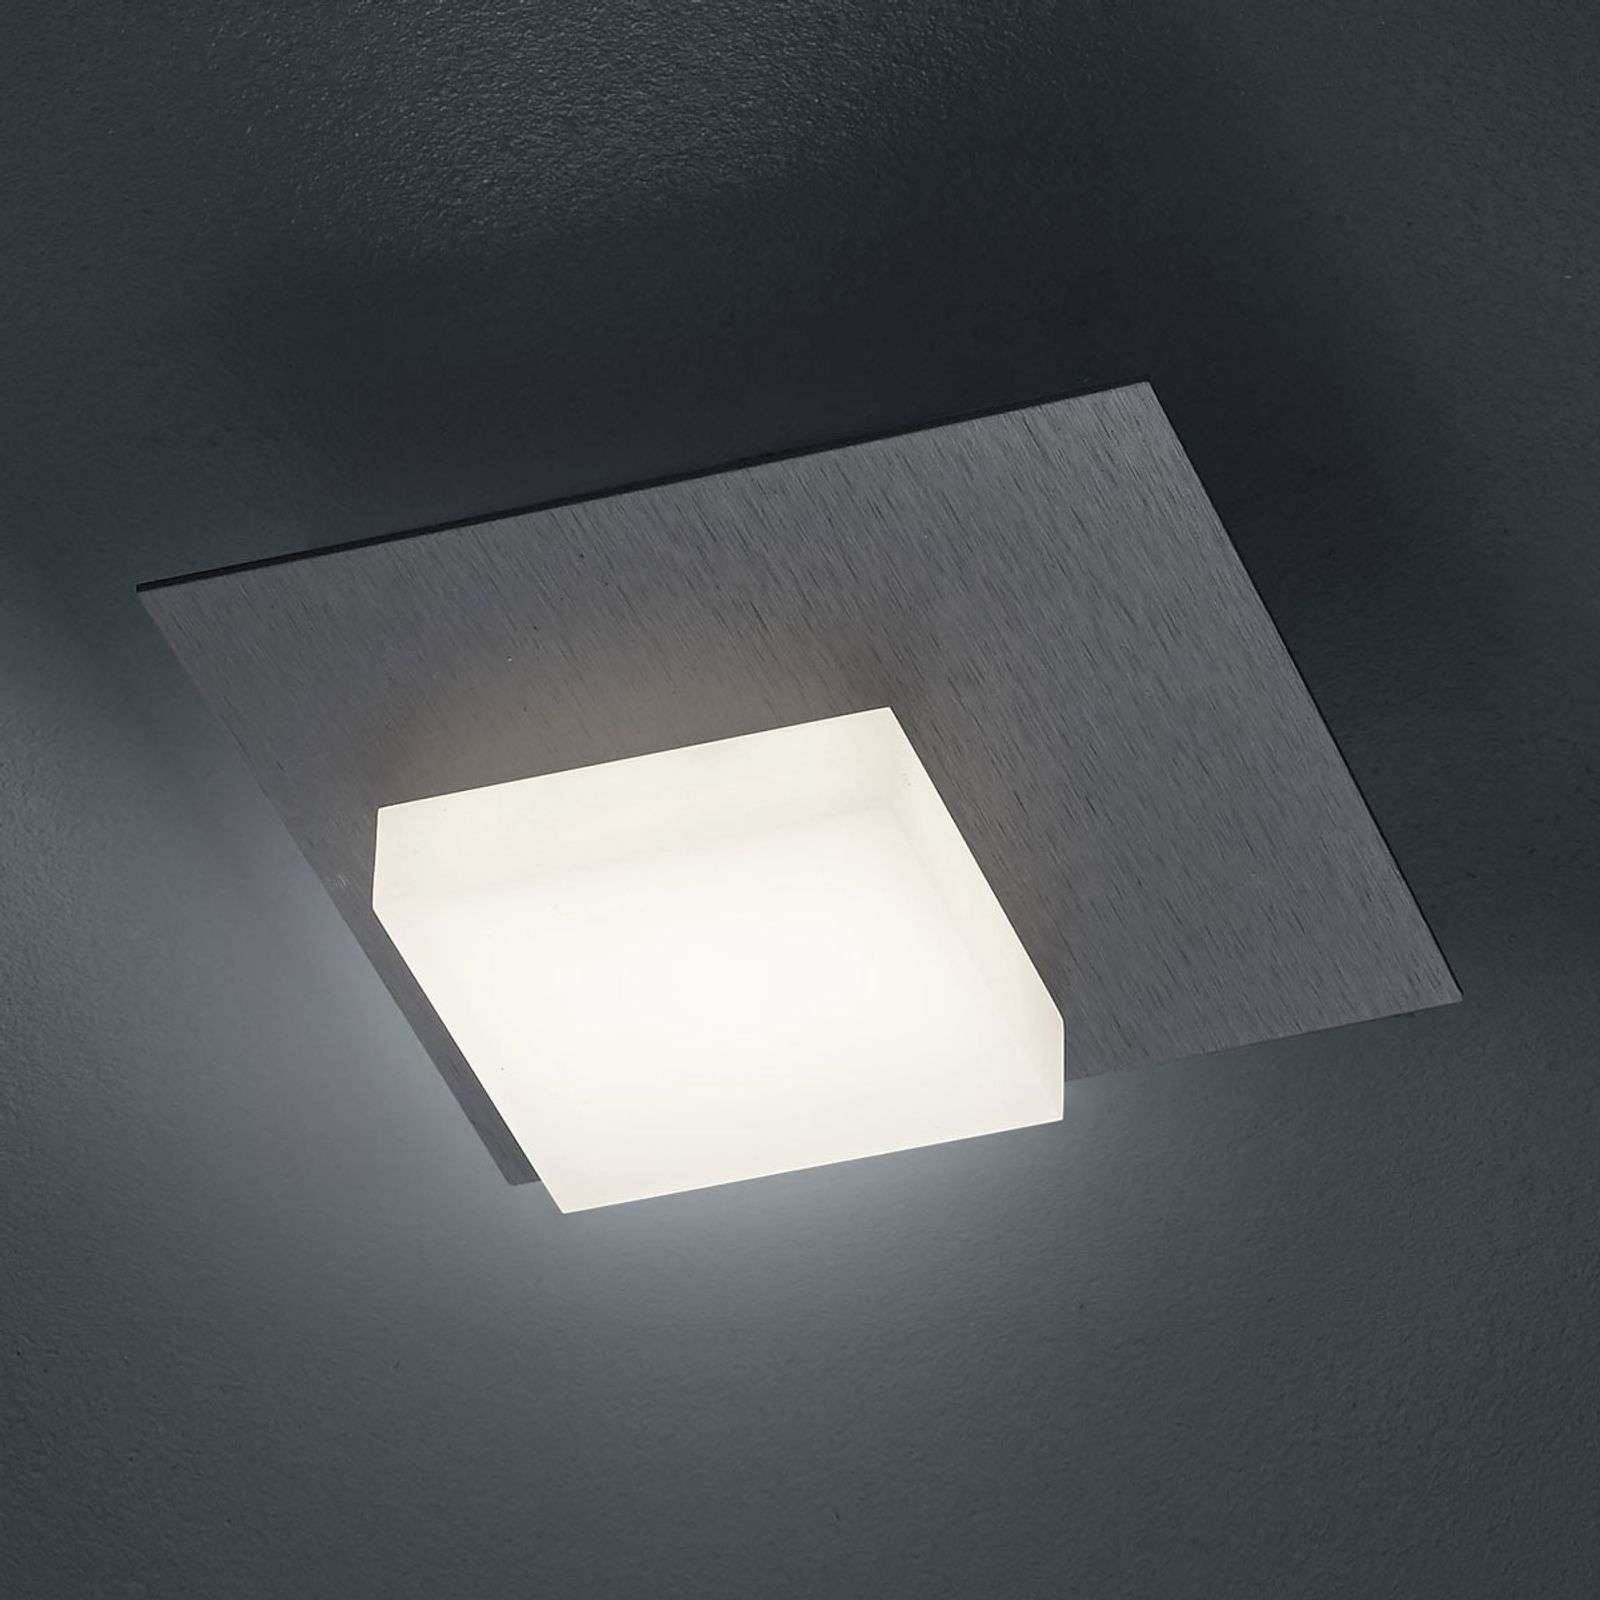 BANKAMP Cube LED plafondlamp 8W, antraciet